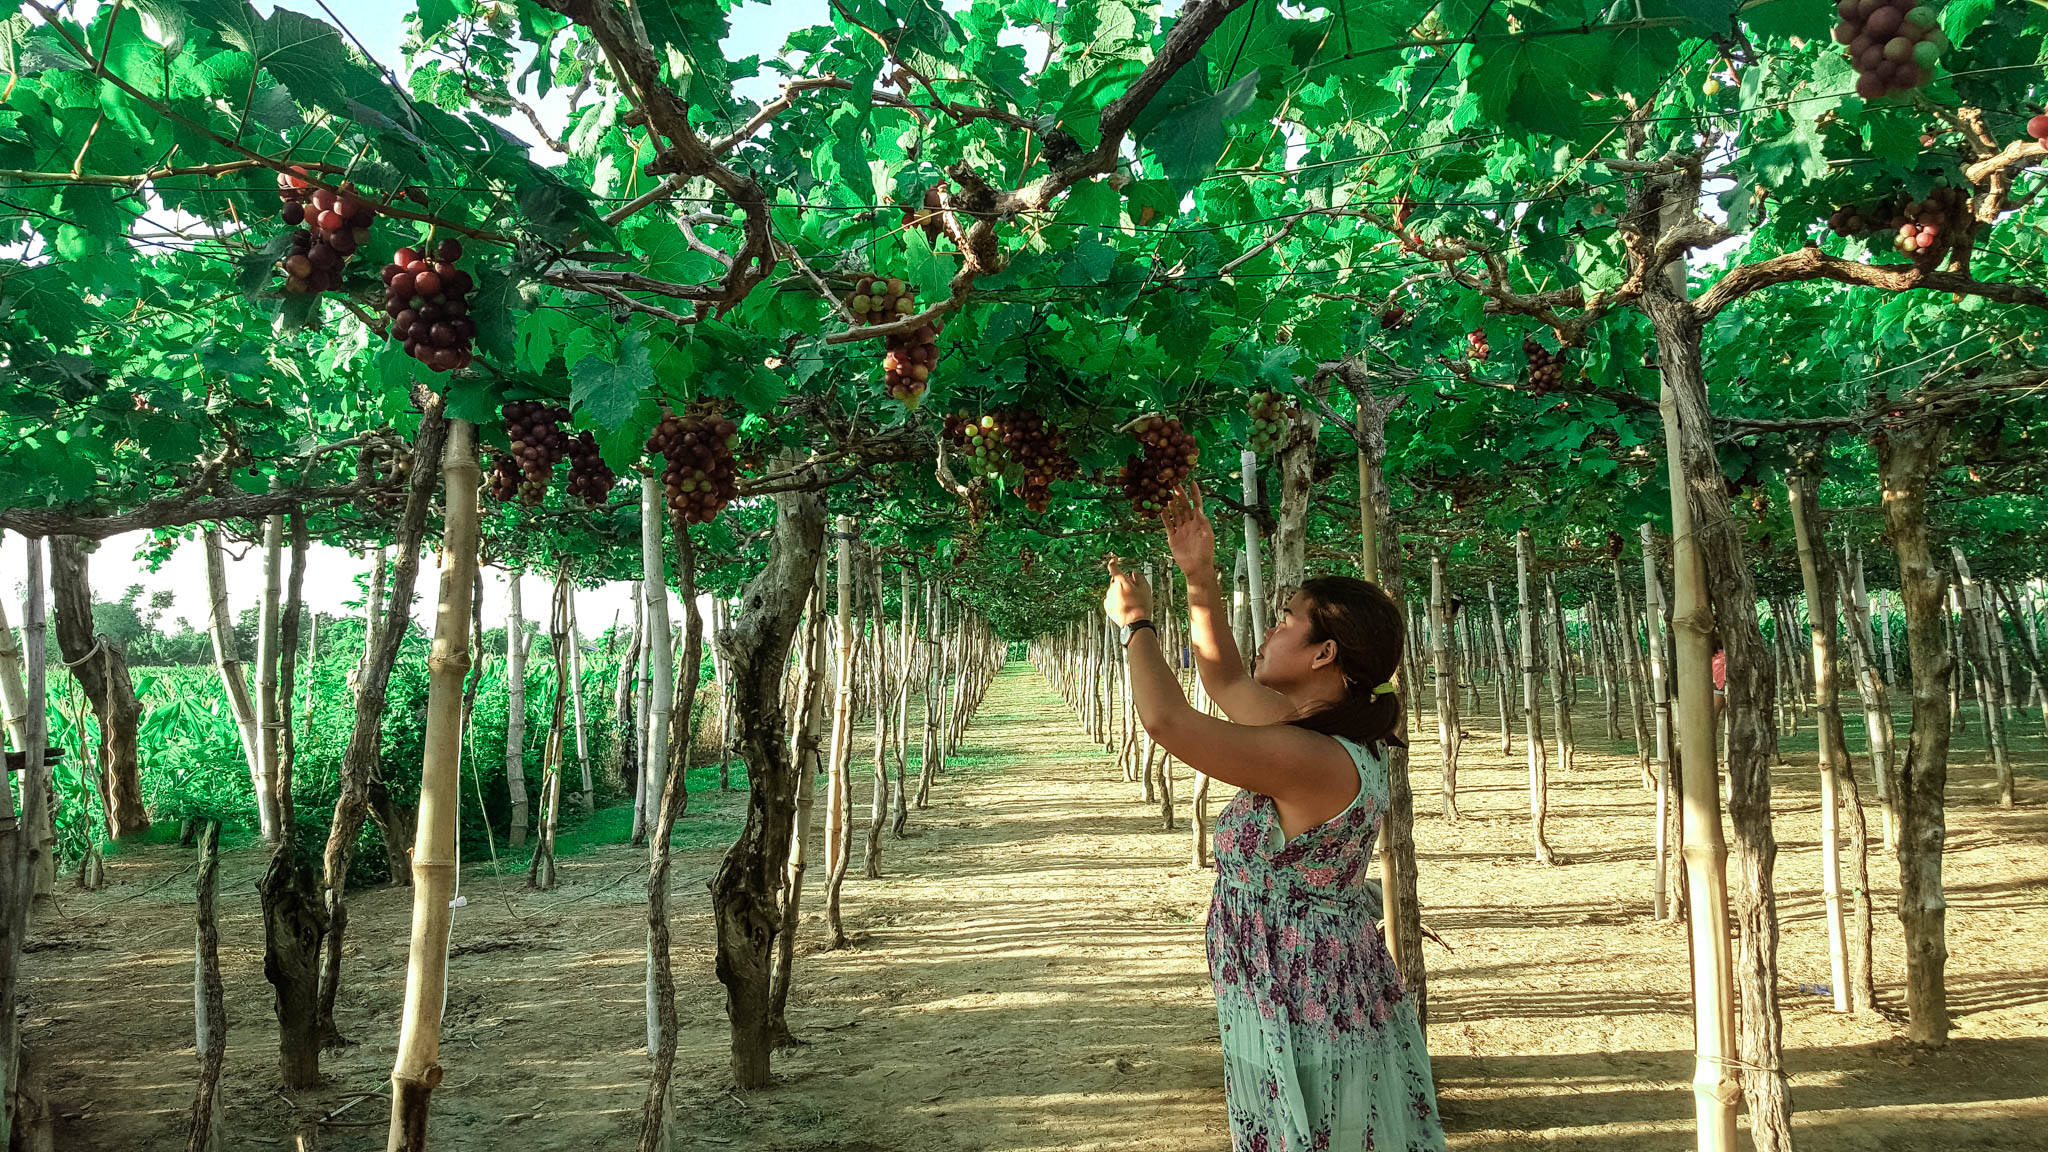 HOW TO GET TO LA UNION GRAPE FARM